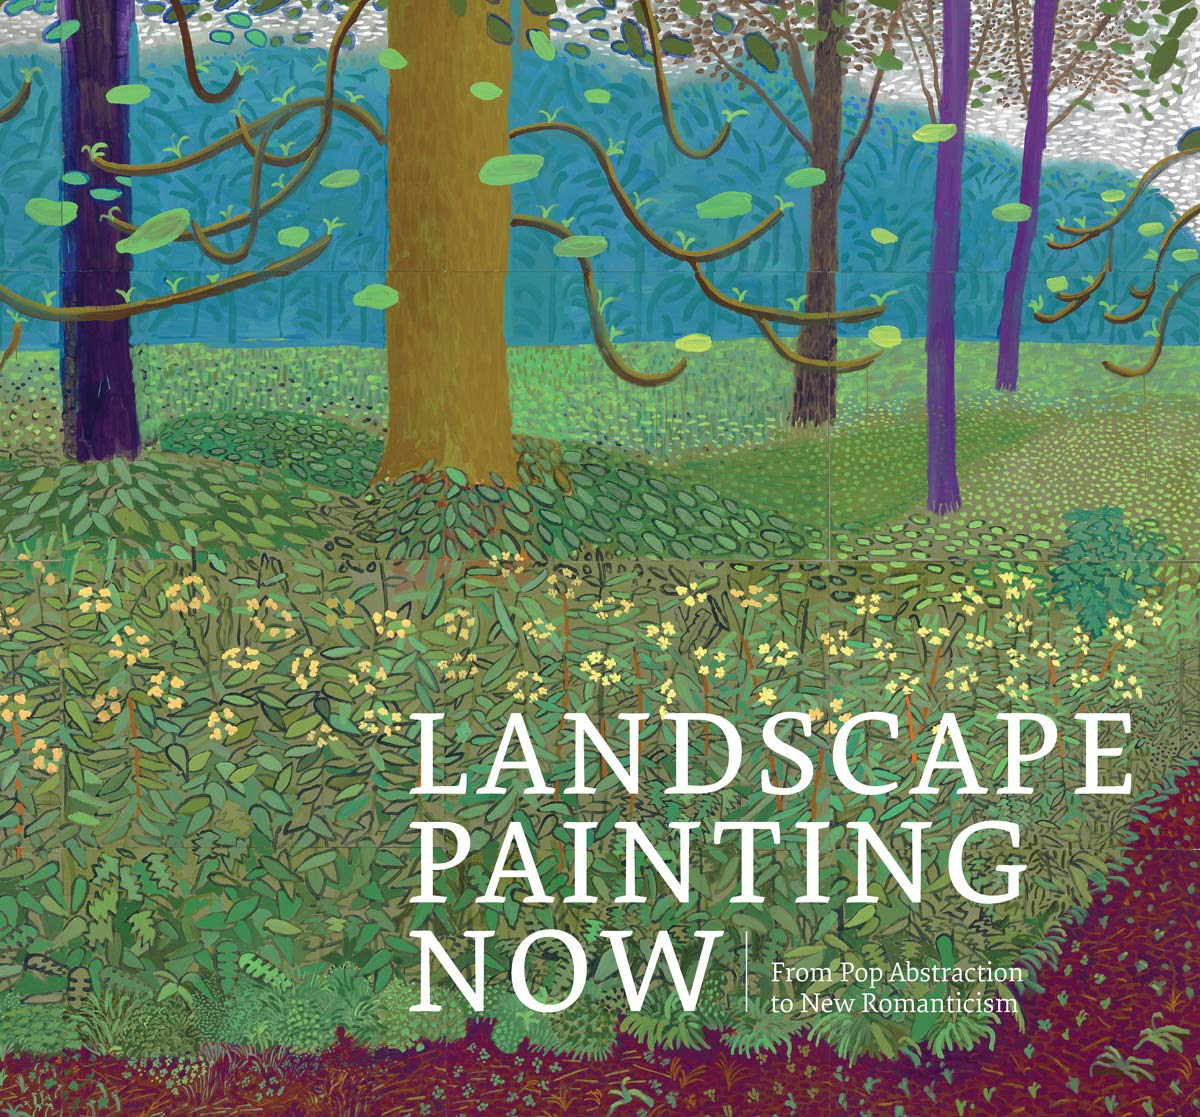 Landscape Painting Now: From Pop Abstraction to New Romanticism by D.A.P.